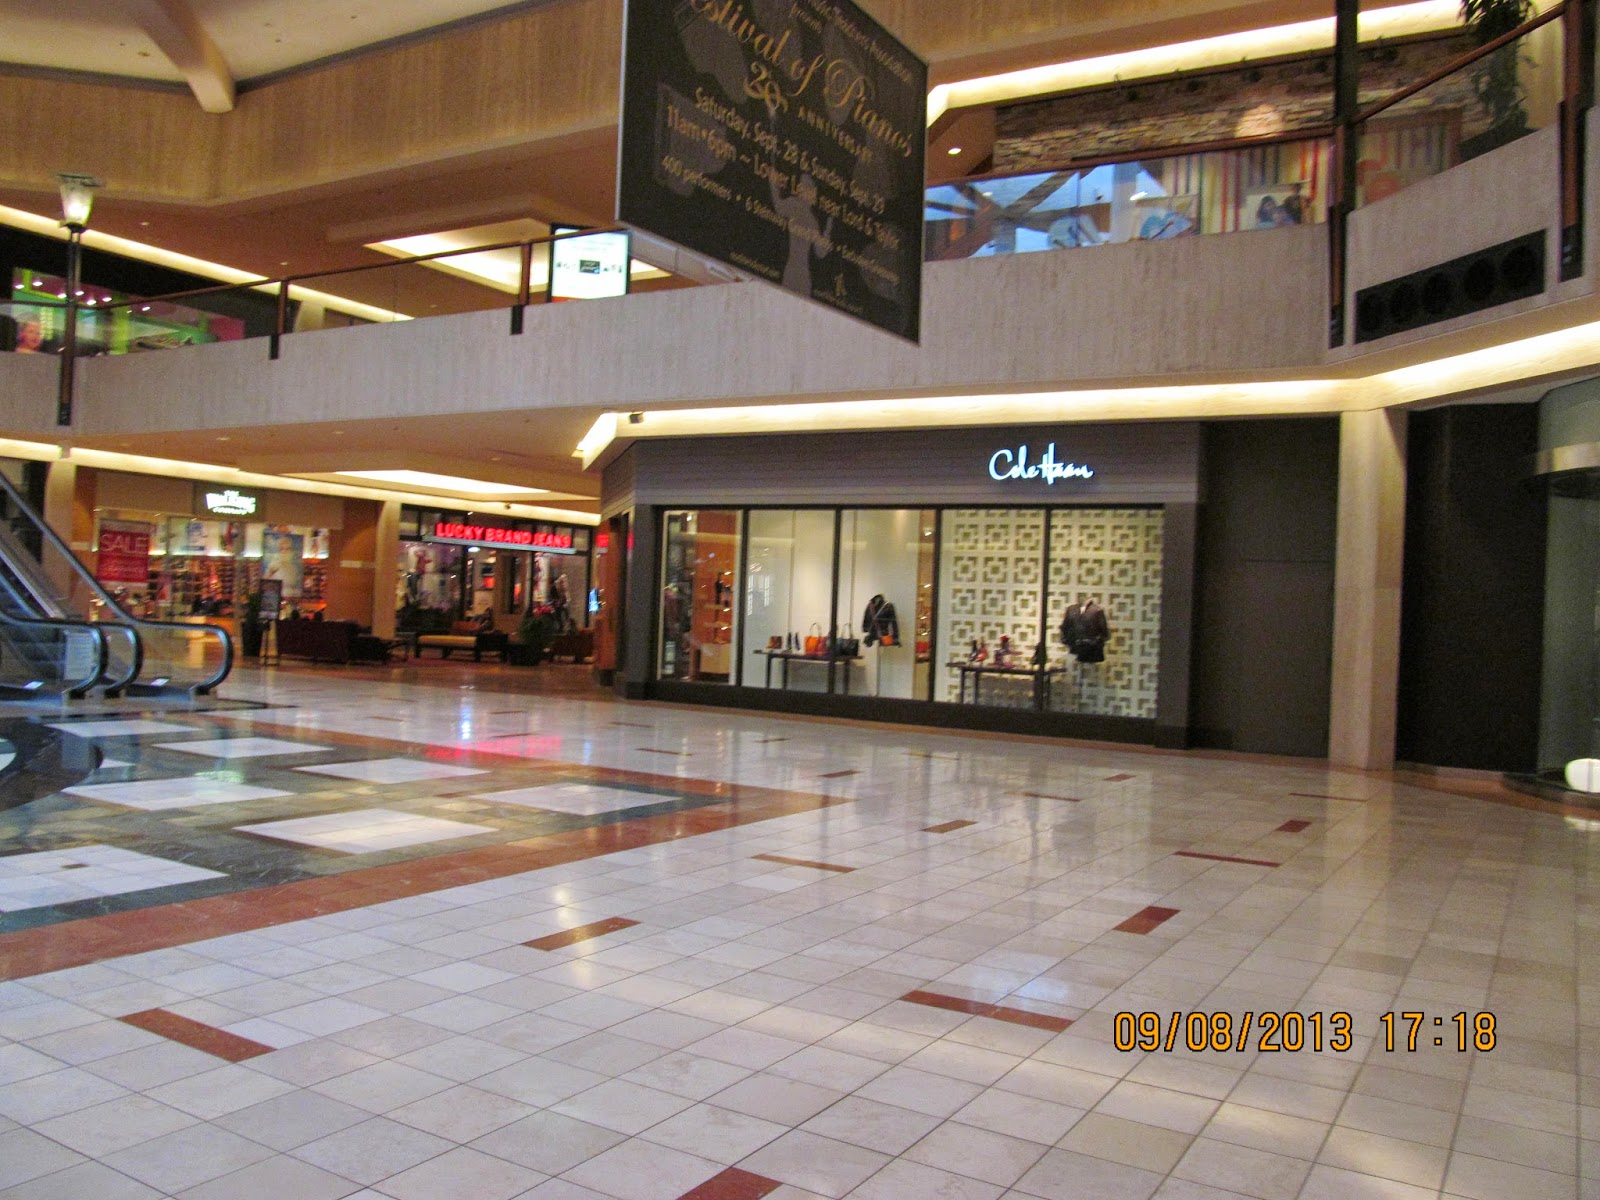 """Shopping in Northbrook, IL"" Northbrook Court is a large shopping mall in Northbrook, Illinois. The mall has a collection of stores serving the North Shore suburbs of Chicago."